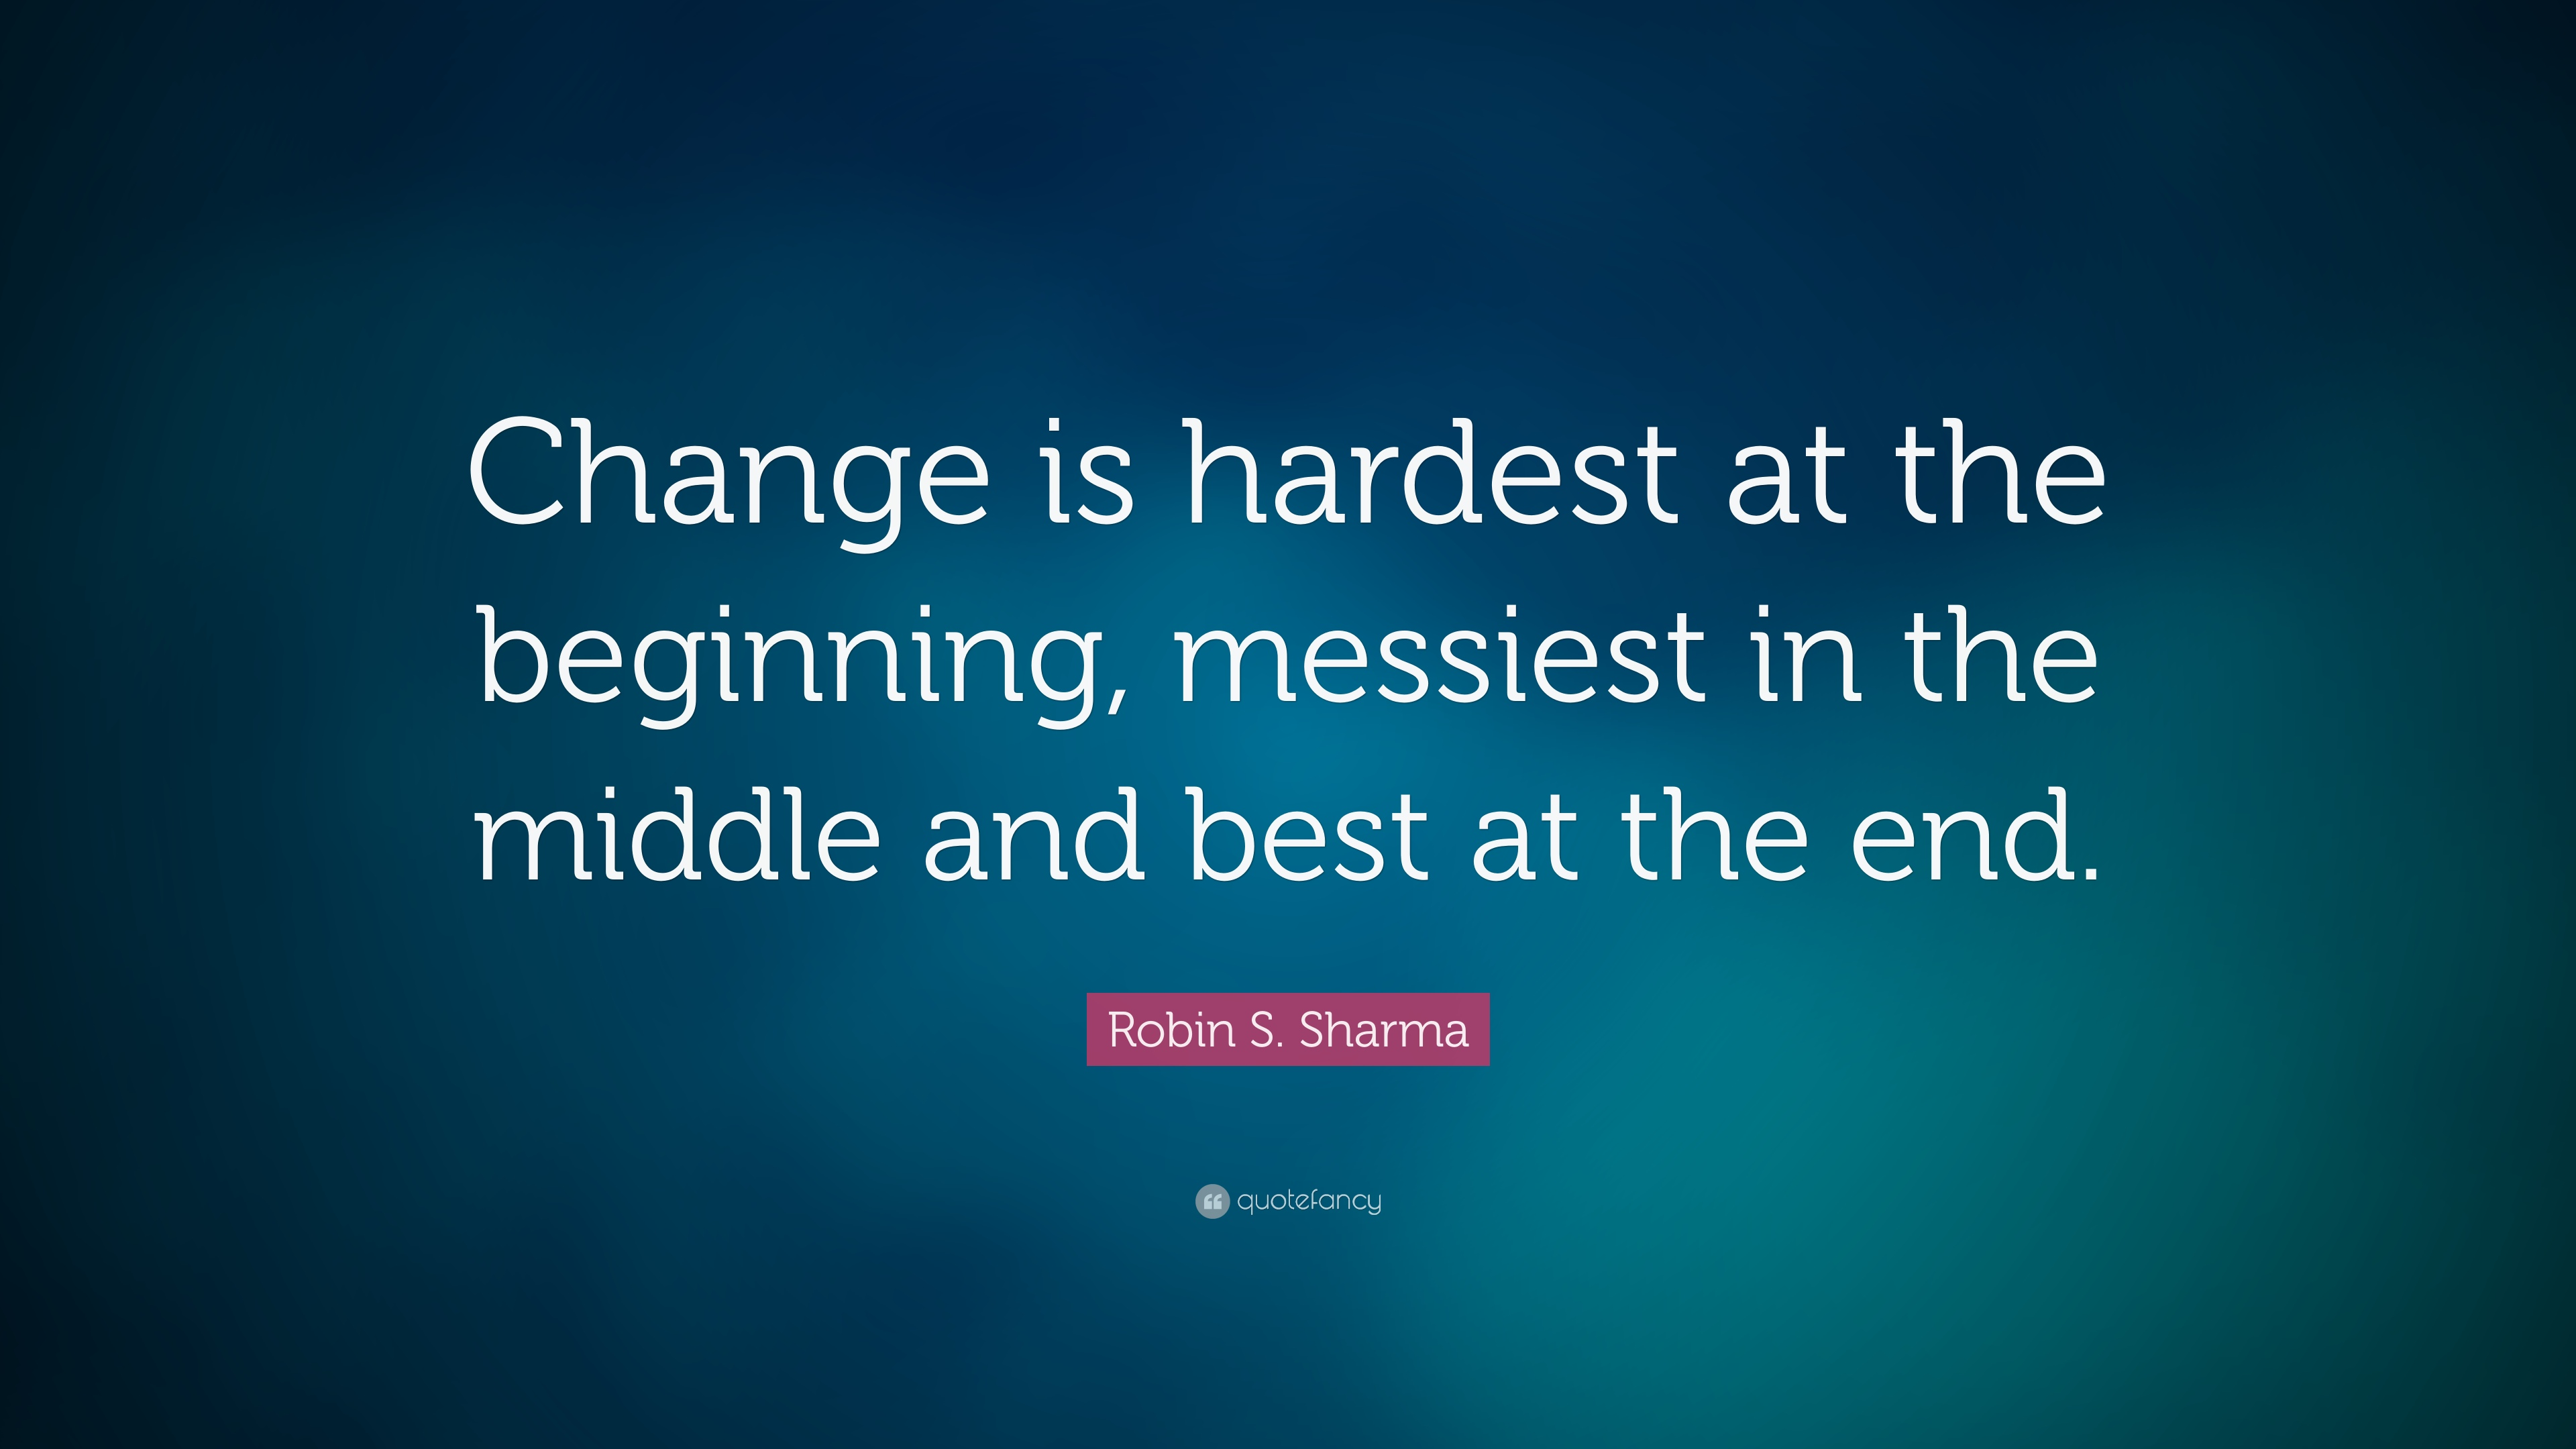 Theodore Roosevelt Wallpaper Quote Robin S Sharma Quote Change Is Hardest At The Beginning